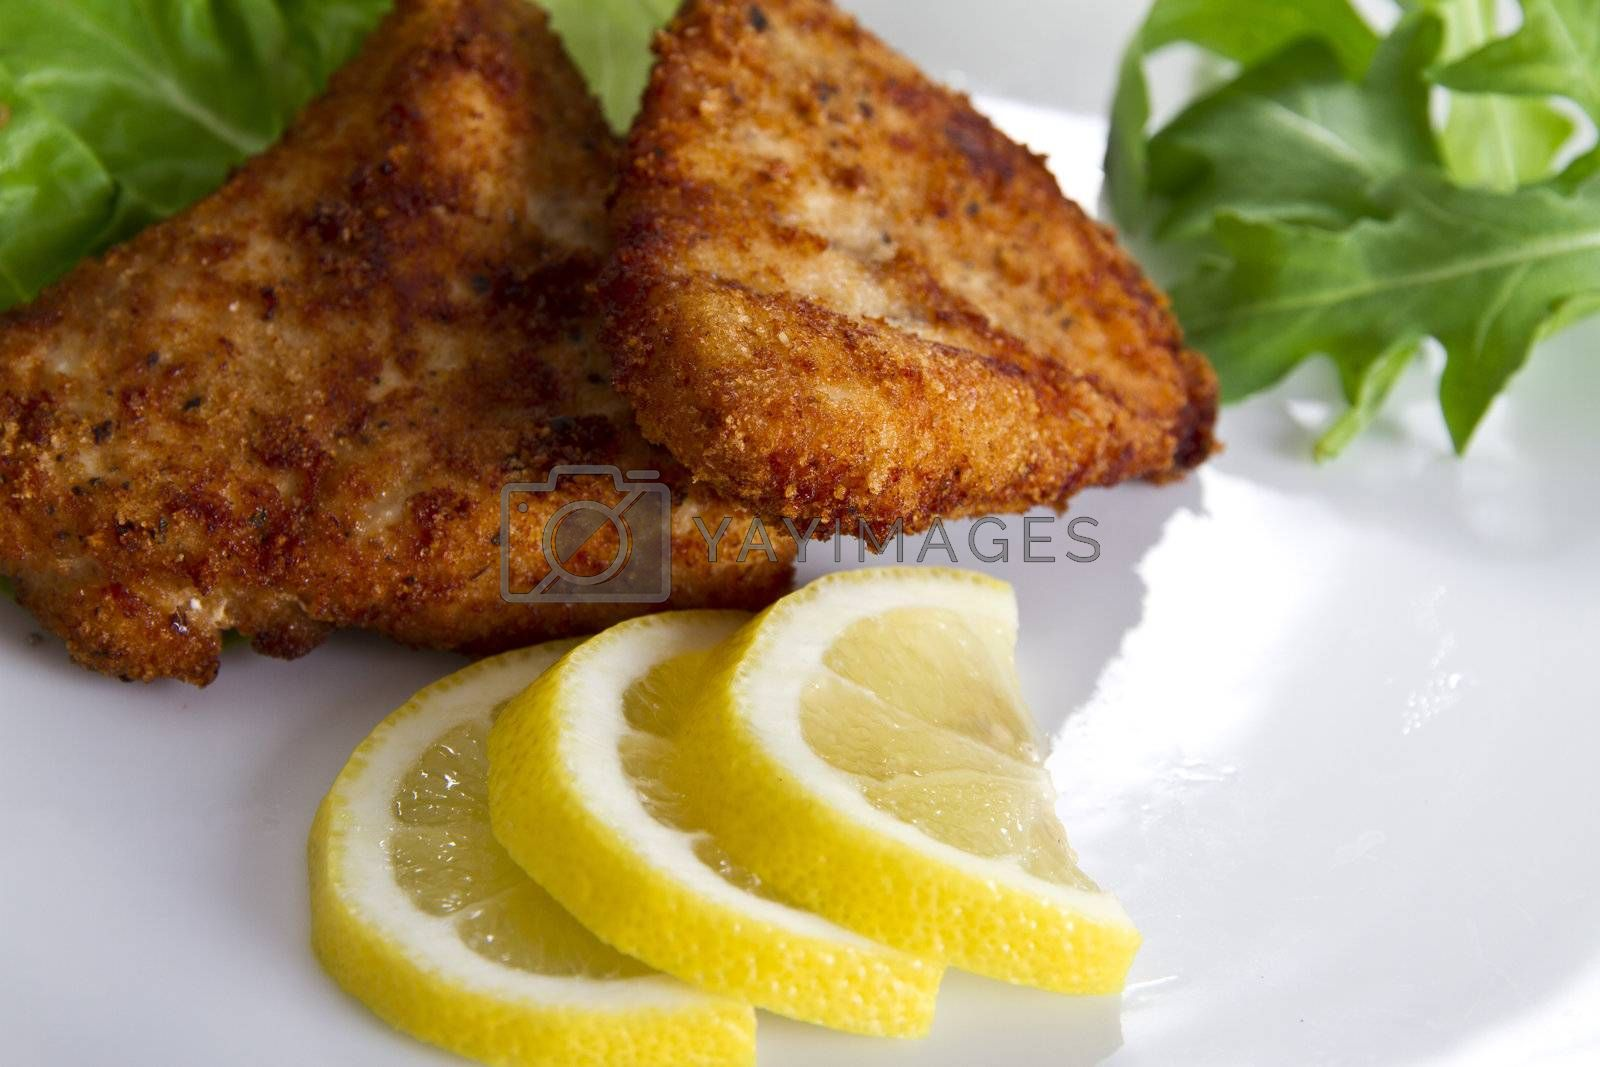 Breaded meat with lemon and salad